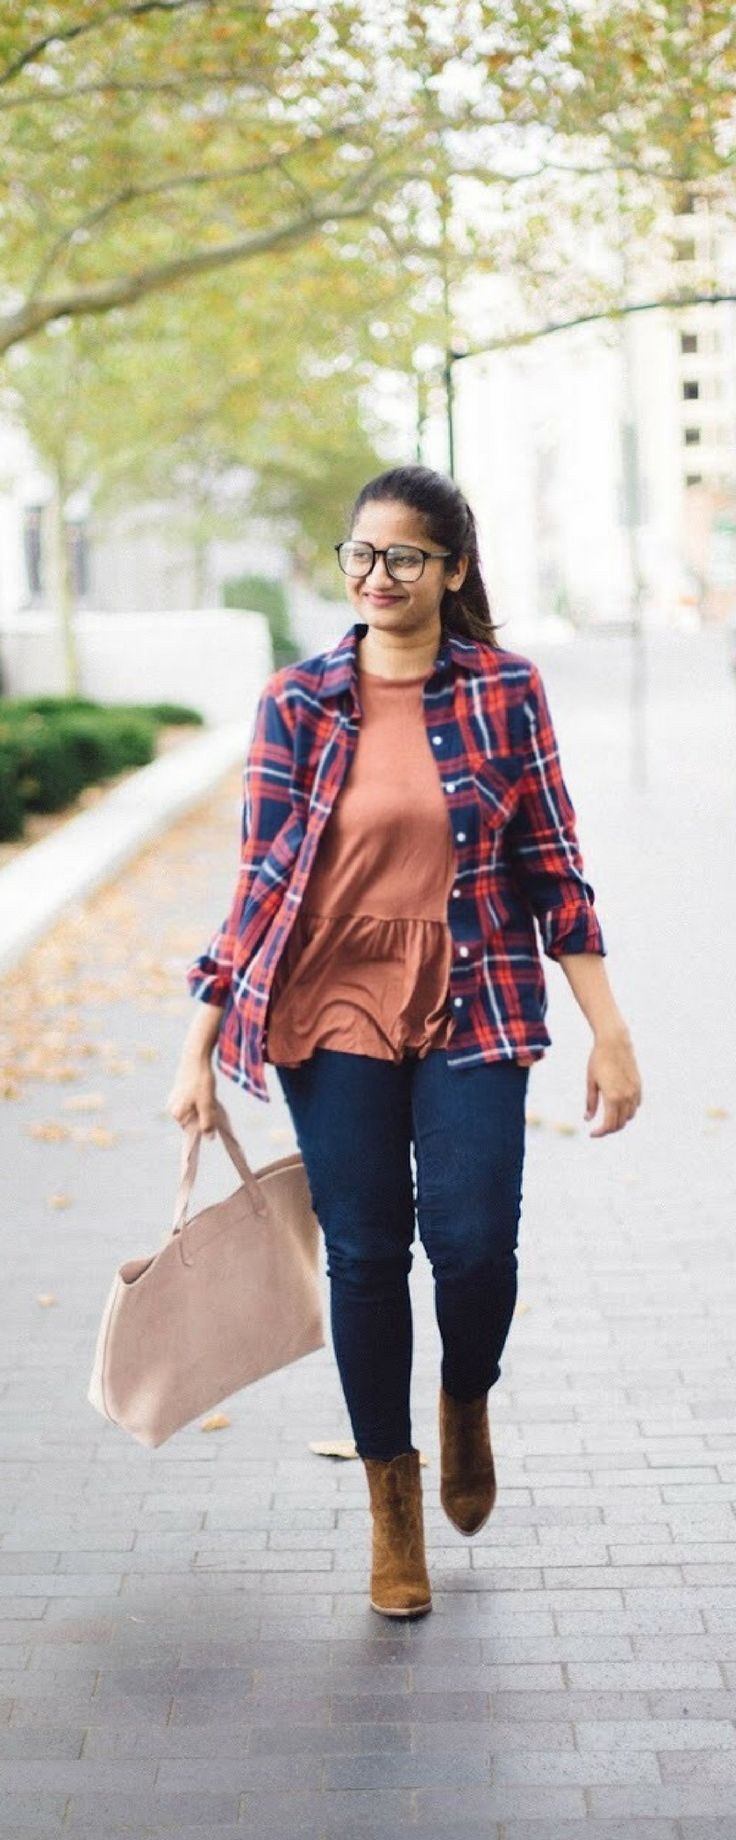 5 Chic and Affordable Back to School Outfits for College Students | dreamingloud.com -------------------flannel shirt, old navy plaid shirt, flannel shirt with peplum top, fall outfits, fall style, dolce vita Conway boots, made well transporter tote